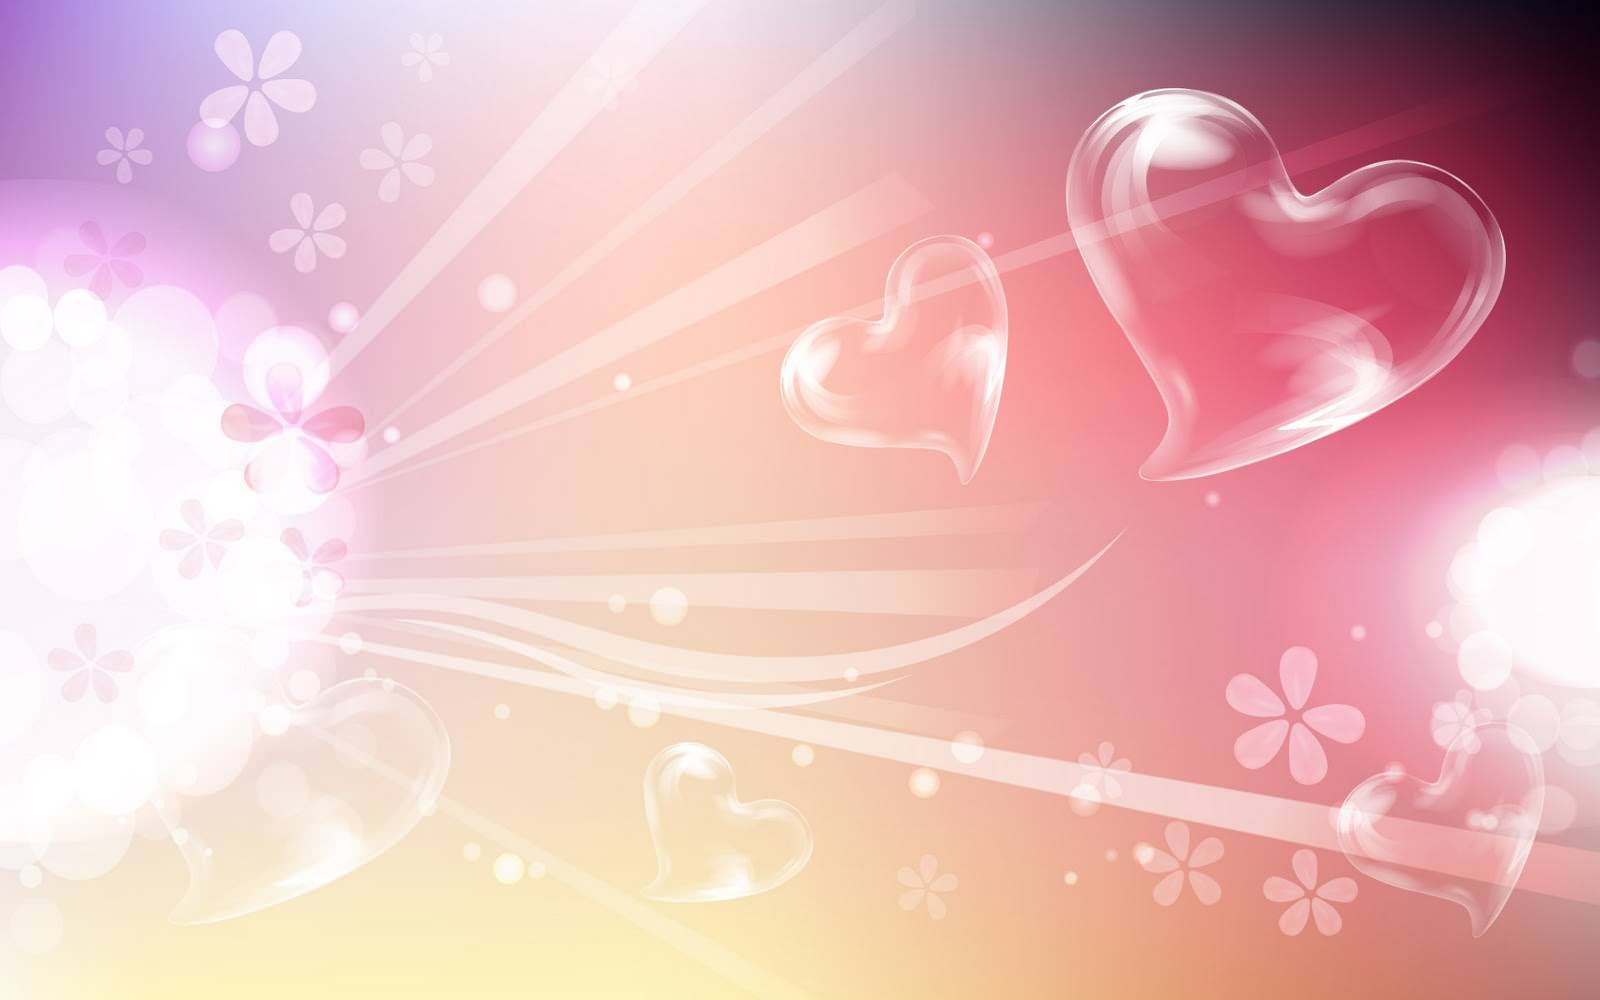 Love Wallpapers Thimes : 22+ Love Backgrounds, Heart, Wallpapers, Images ...